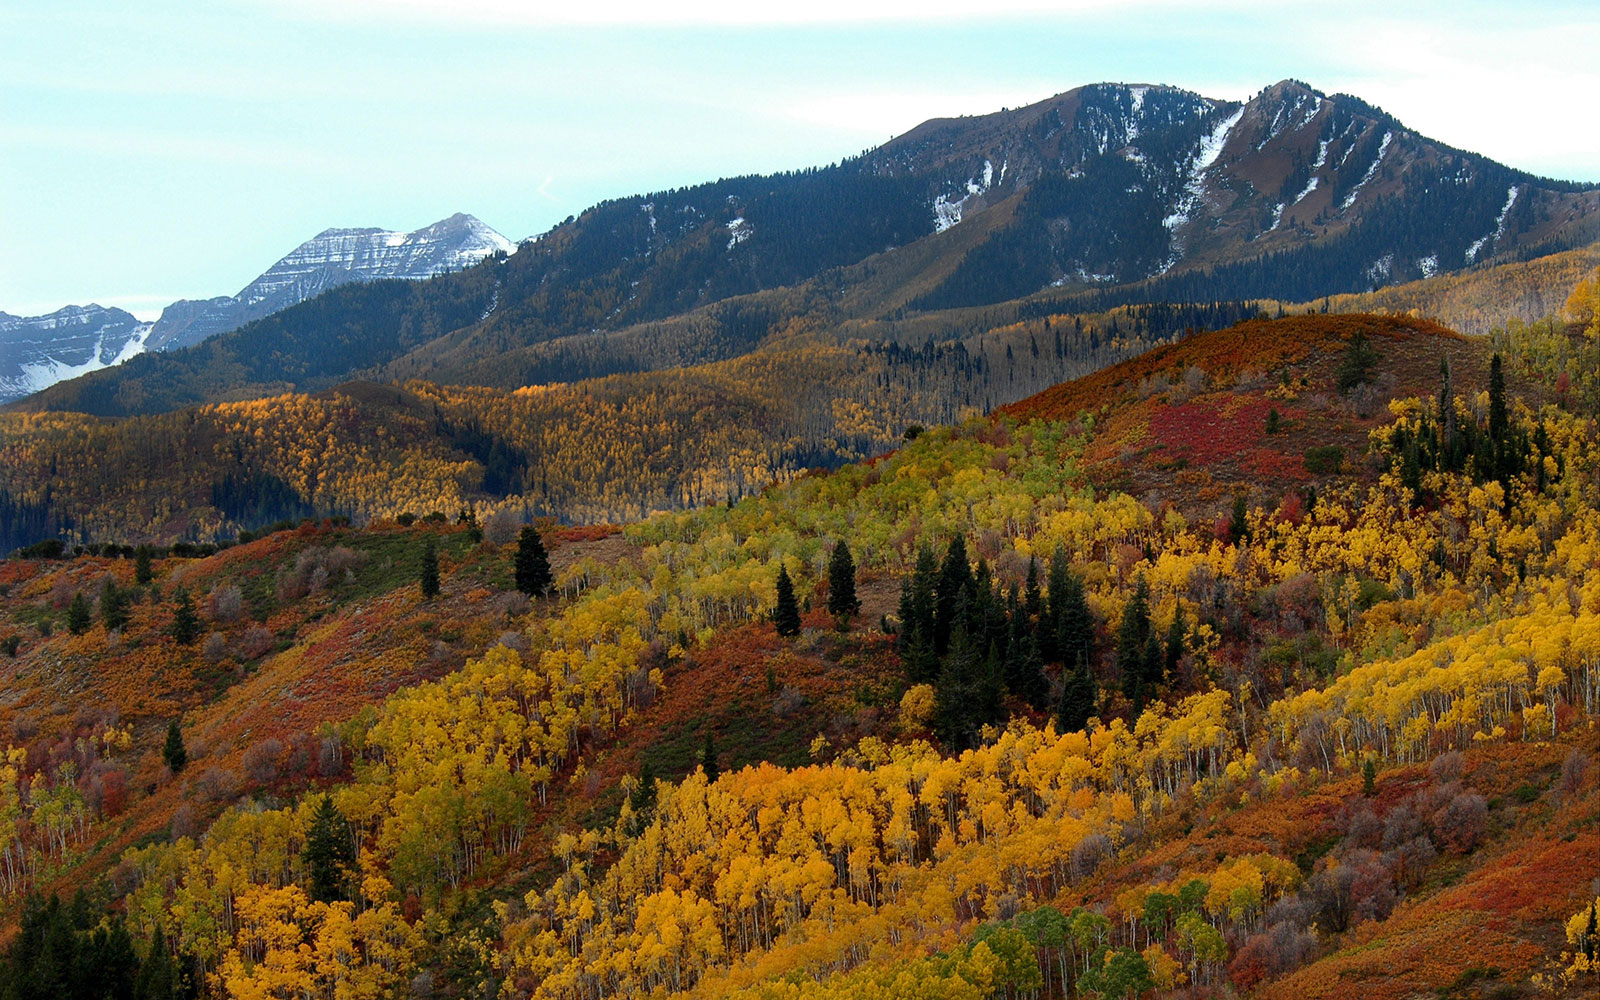 Most Romantic Fall Getaways: Park City, UT